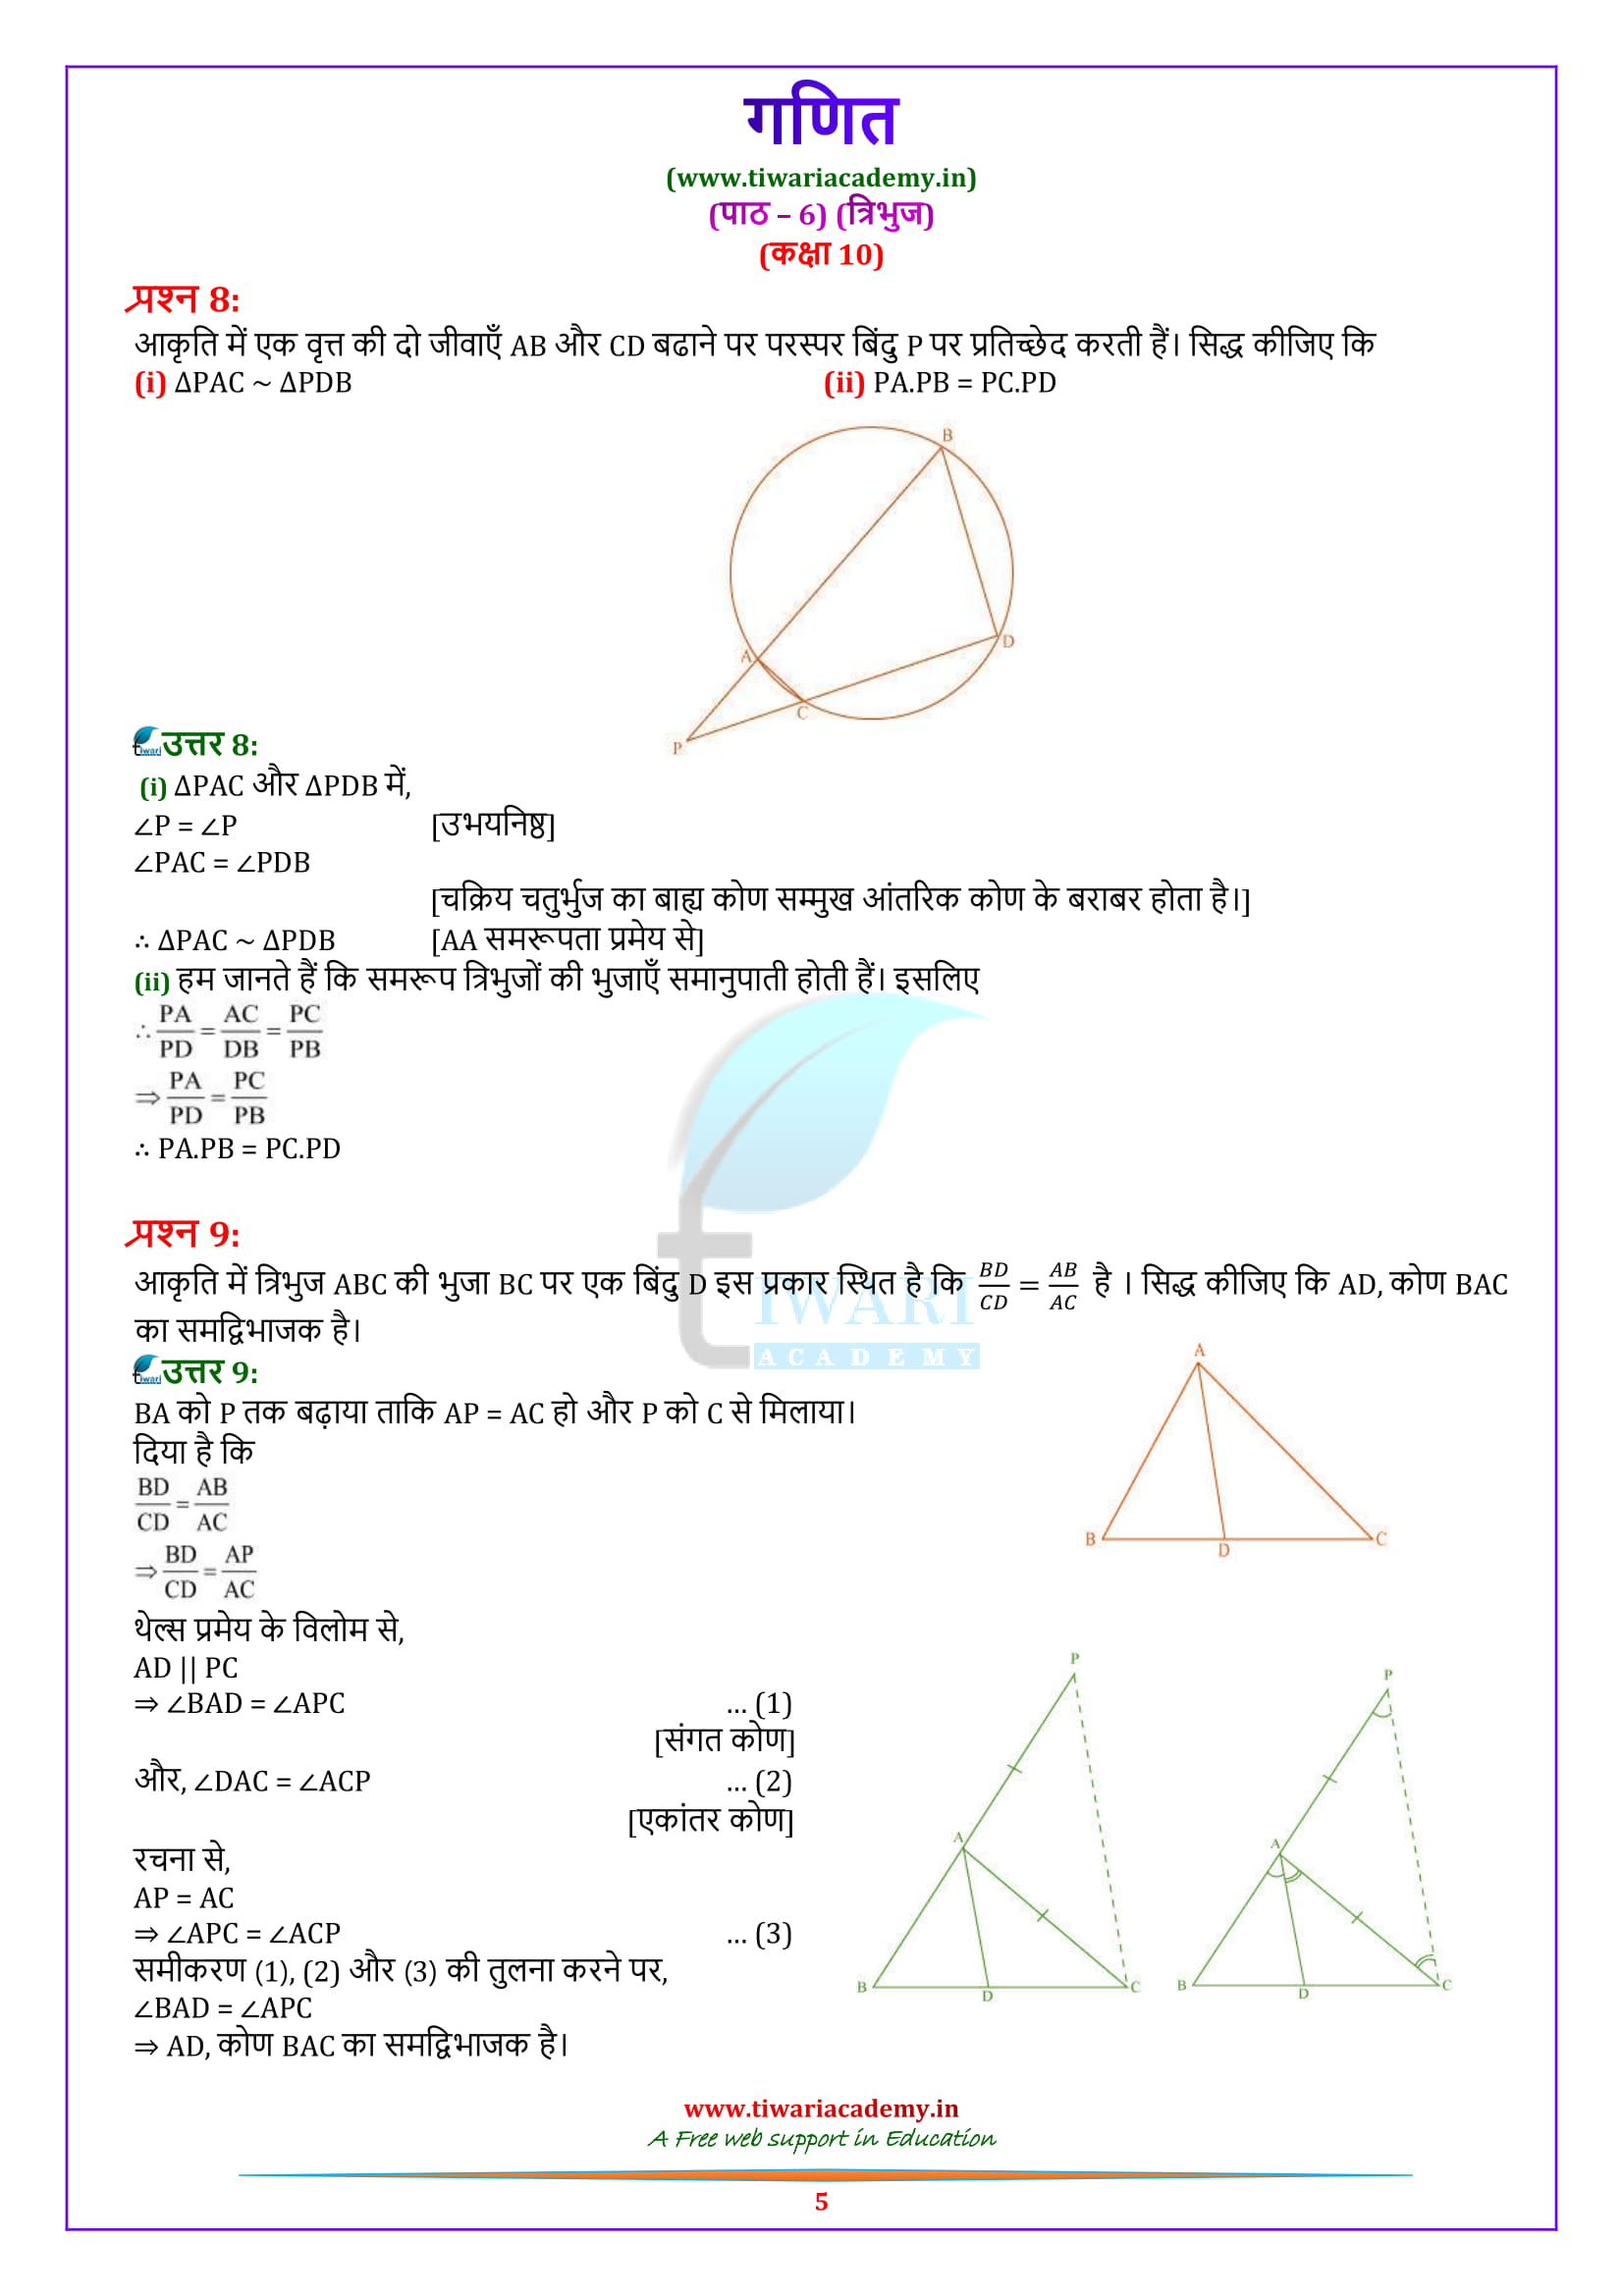 NCERT Solutions for 10 Maths Exercise 6.6 in hindi medium